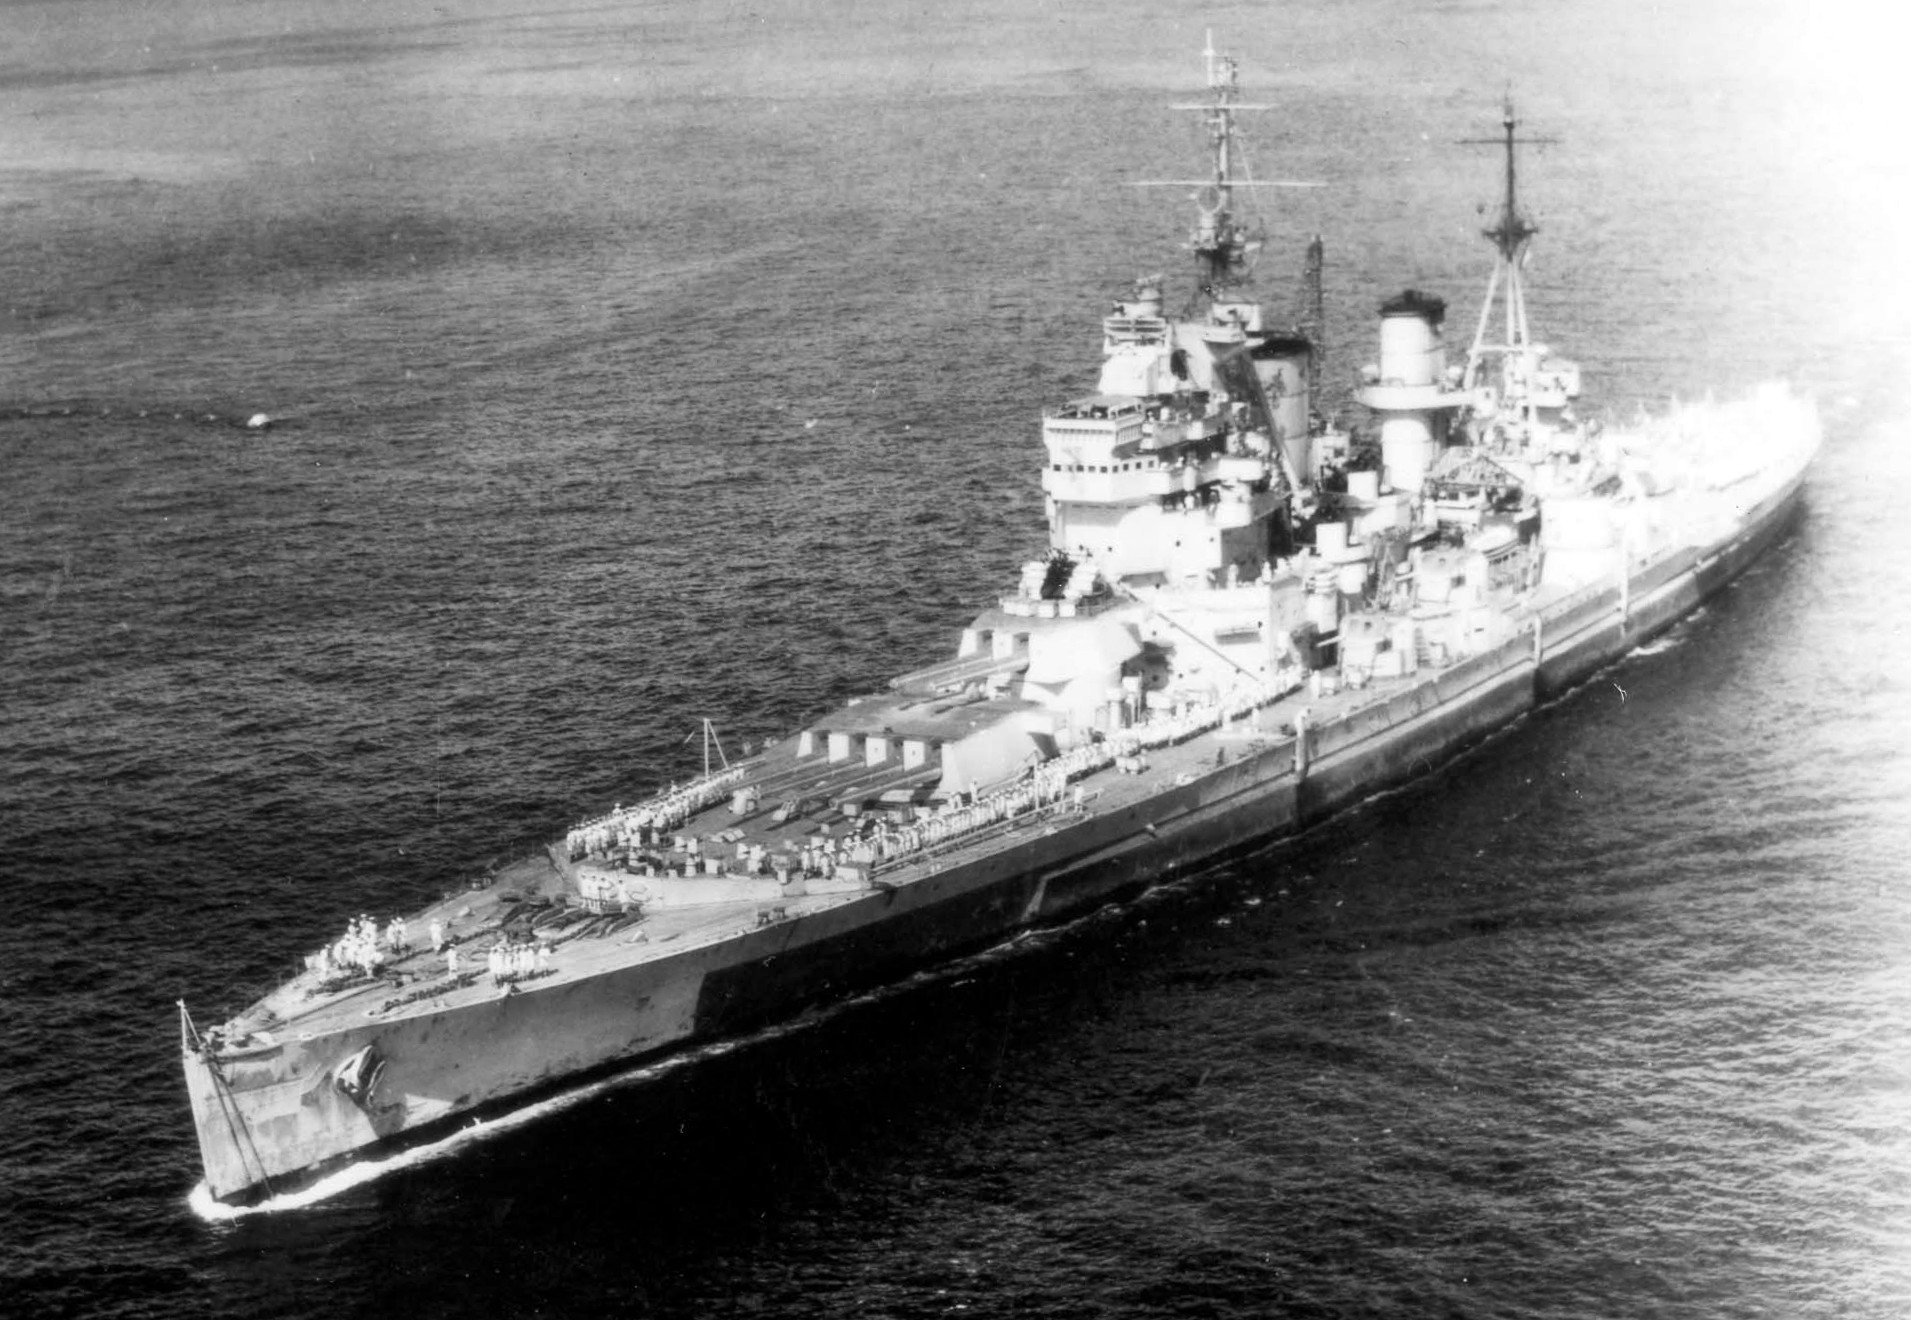 King_George_V_class_battleship_1945.jpg